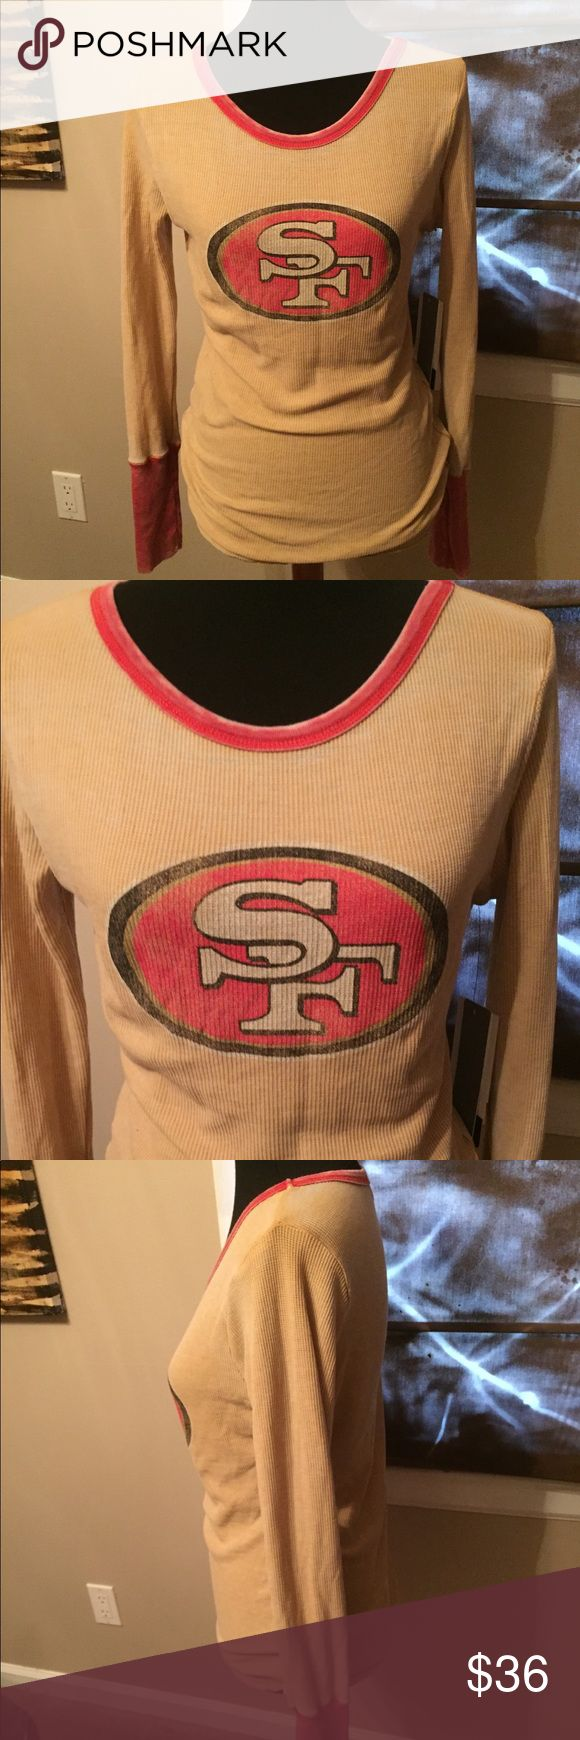 NWT San Francisco NFL Thermal Game Day Shirt Never been worn. Size medium. Color is a deep cream/tan base. Team logo on the front. Size is medium. Long sleeve. Round neck. NFL Tops